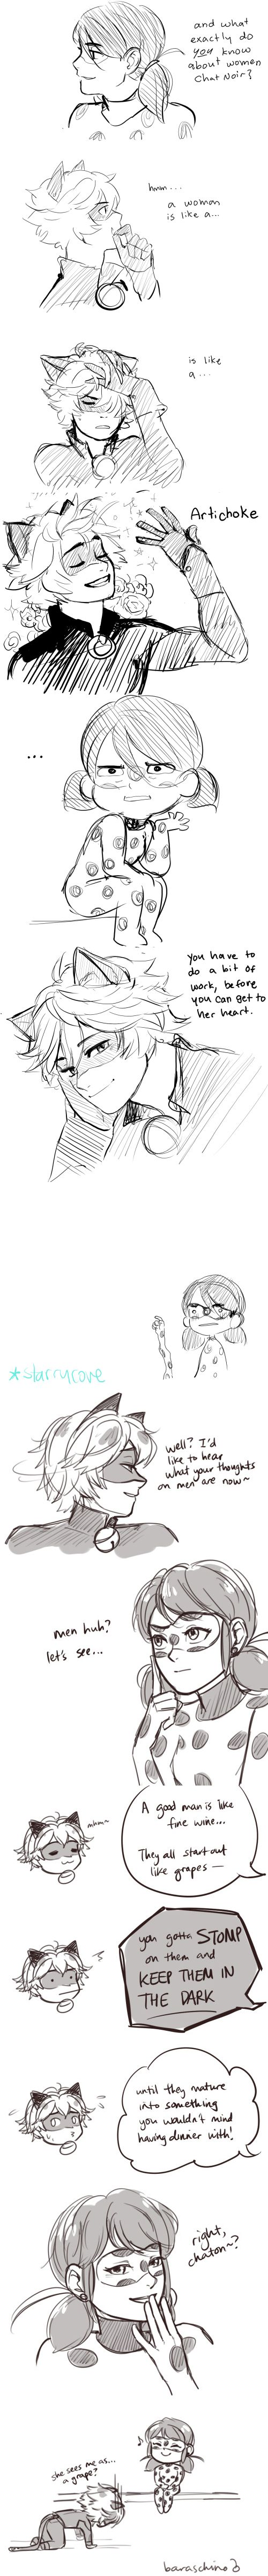 How Ladybug and Chat Noir see each other~ (Miraculous Ladybug, Chat Noir, comic, funny)